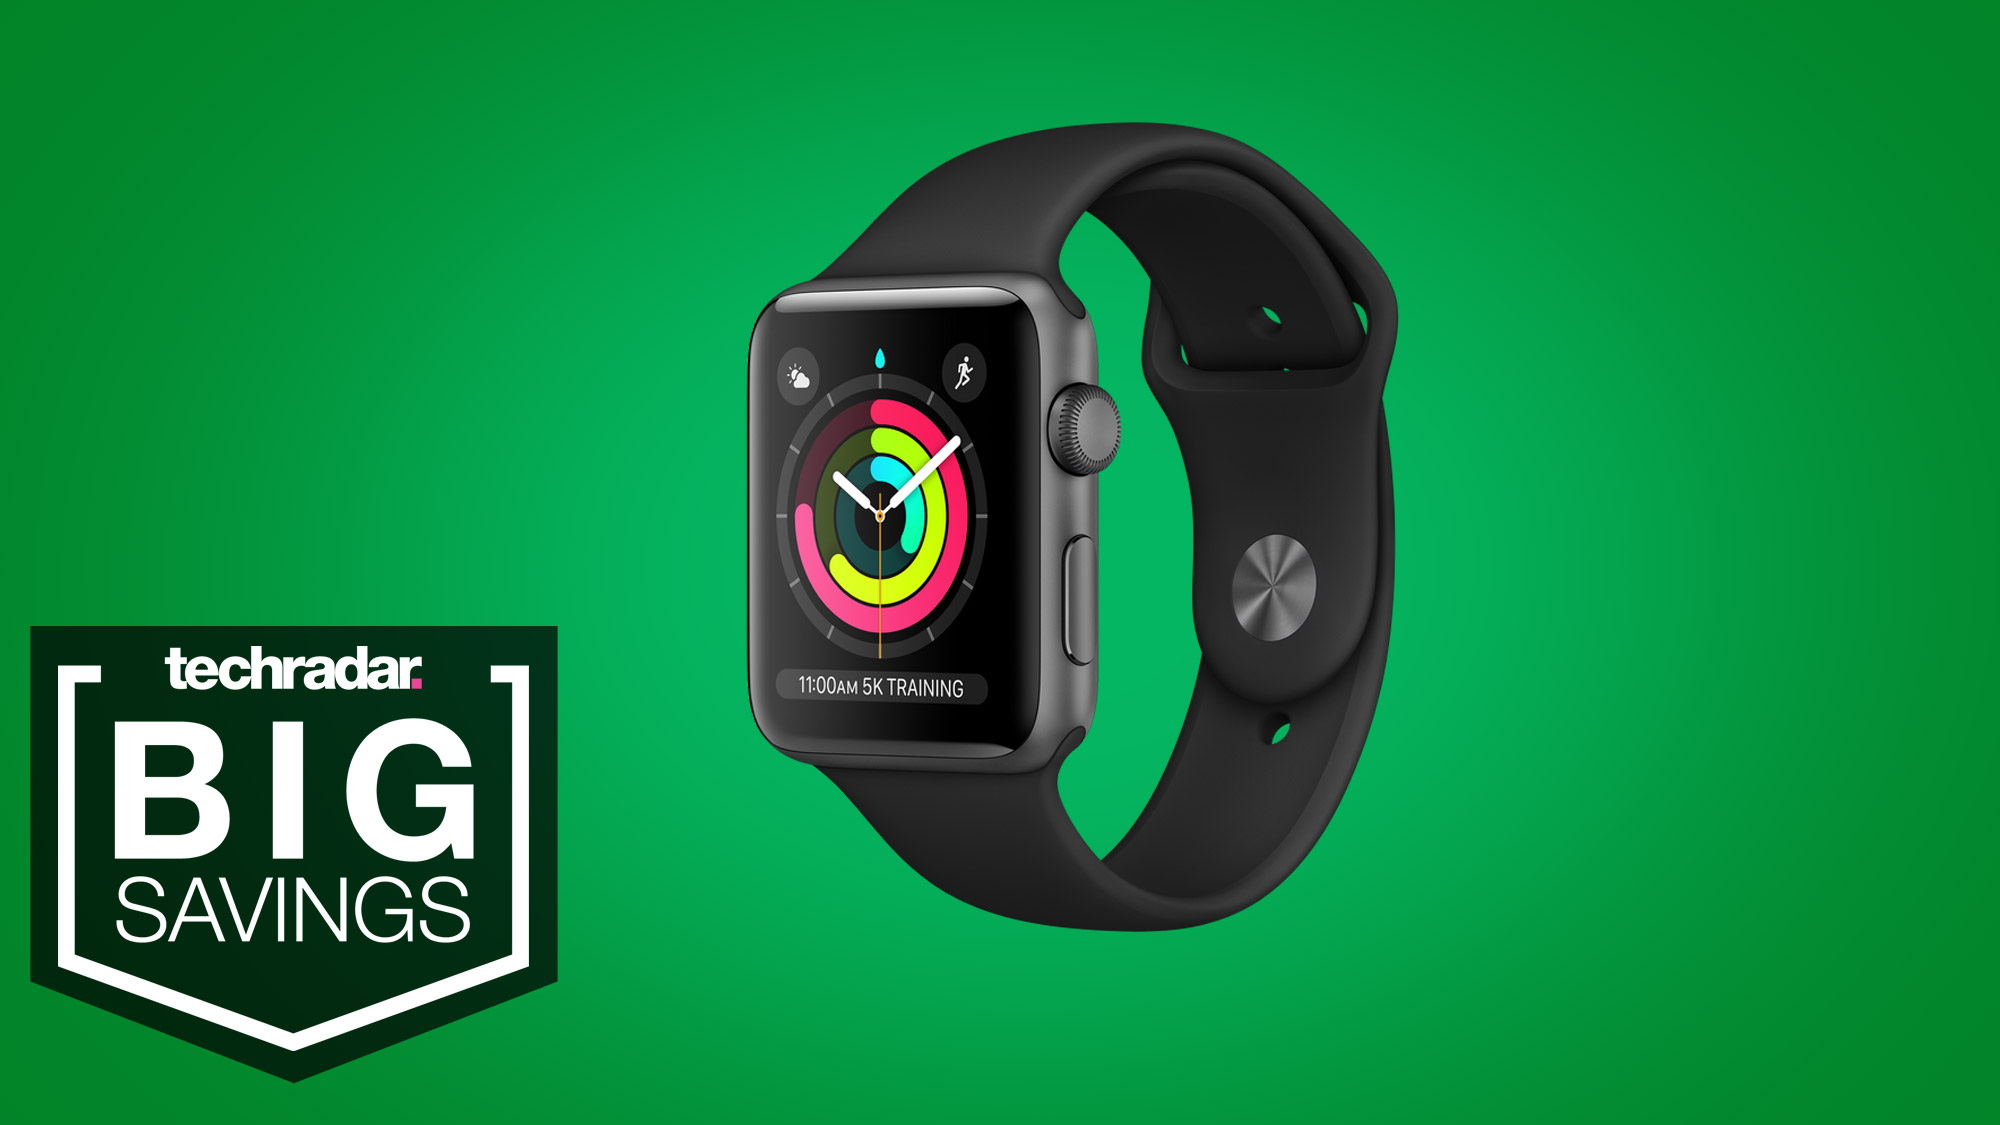 Walmart Stock Phone Number >> The Apple Watch 3 Is Back In Stock And On Sale For 199 At